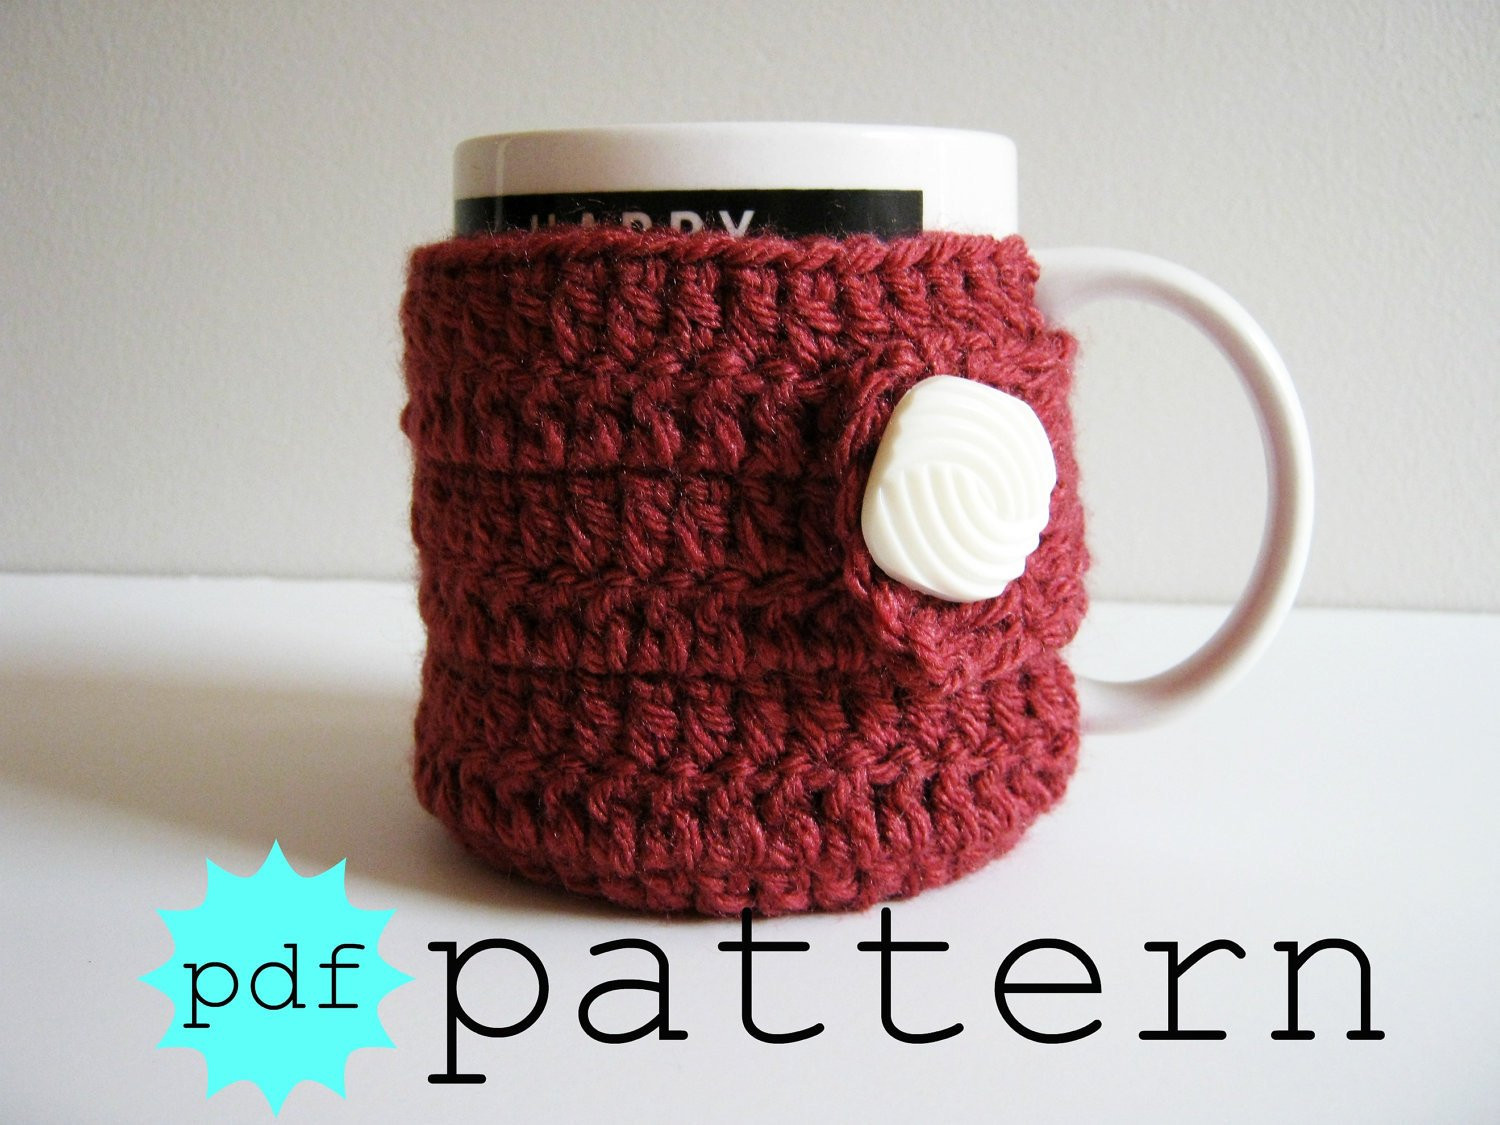 Crochet Coffee Cup Cozy Luxury Pdf Crochet Pattern Coffee Mug Cozy with button by Of Crochet Coffee Cup Cozy Awesome Crochet Coffee Cozy Amy Latta Creations